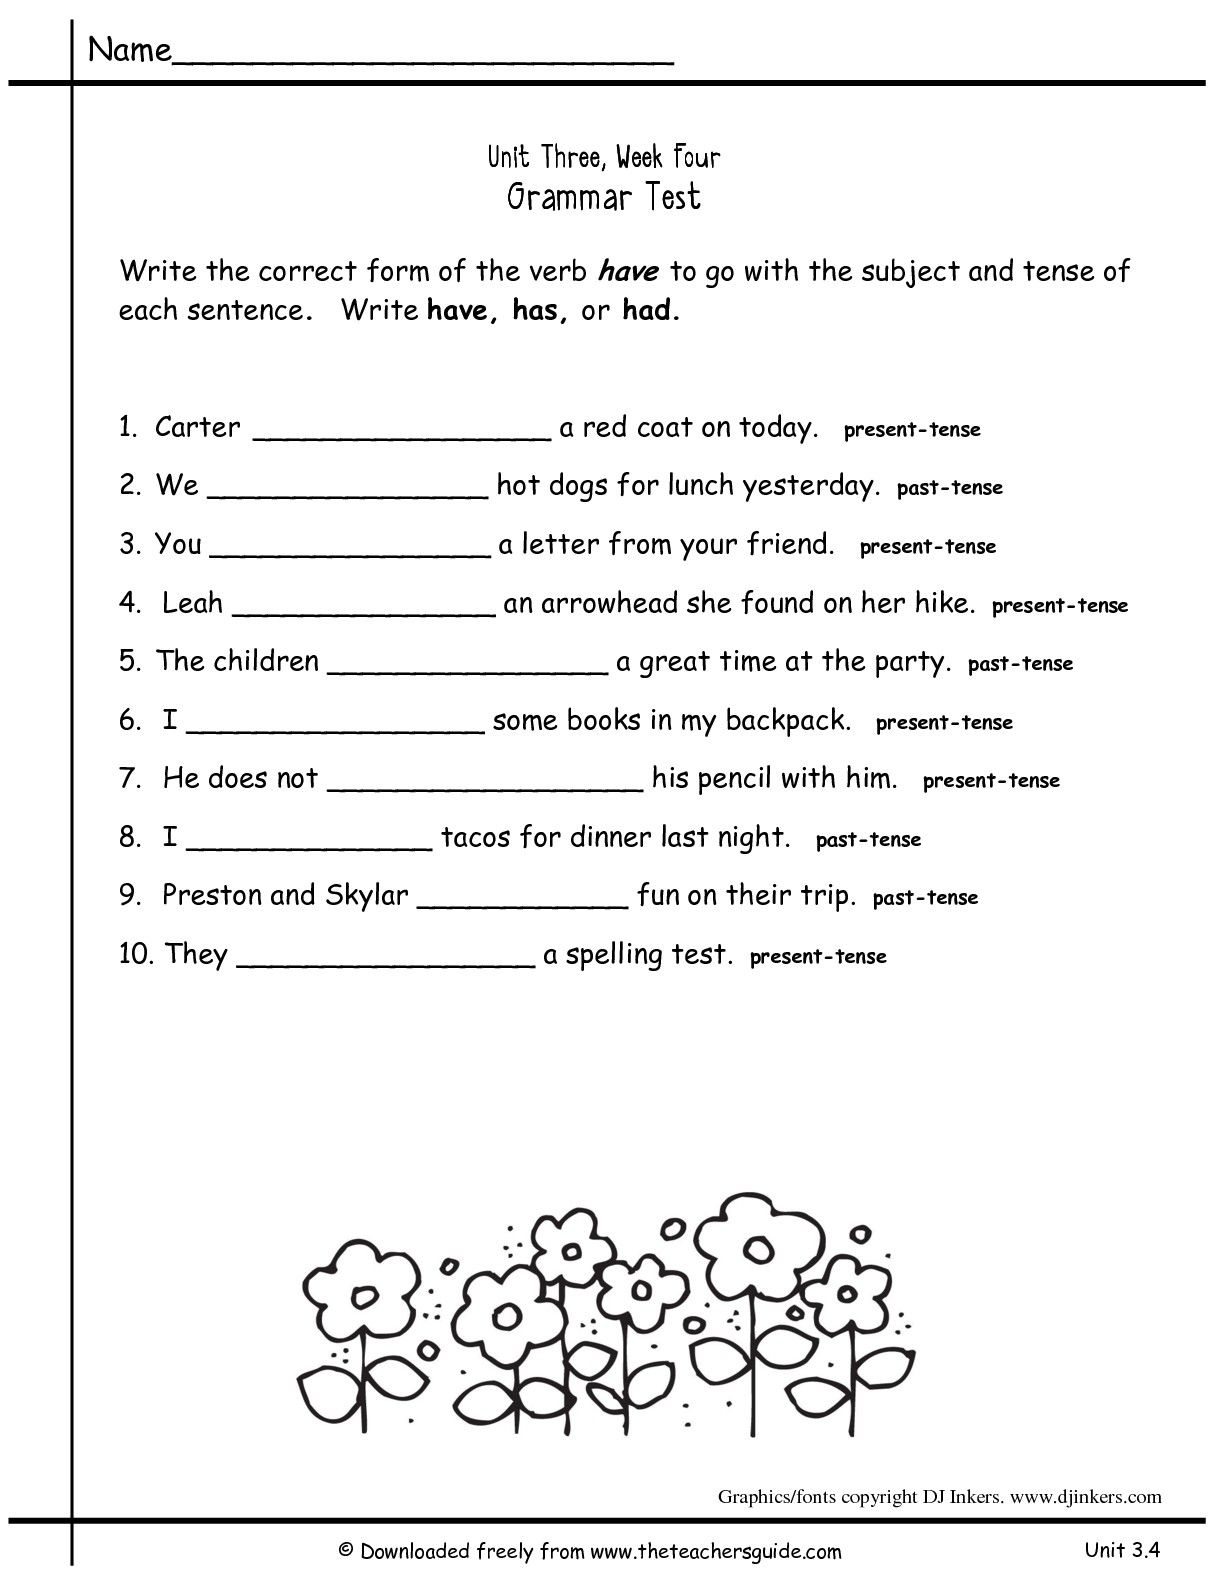 Pin By Amanda Yell On School Stuff 2nd Grade With Images 2nd Grade Worksheets Verb Worksheets Grammar Worksheets